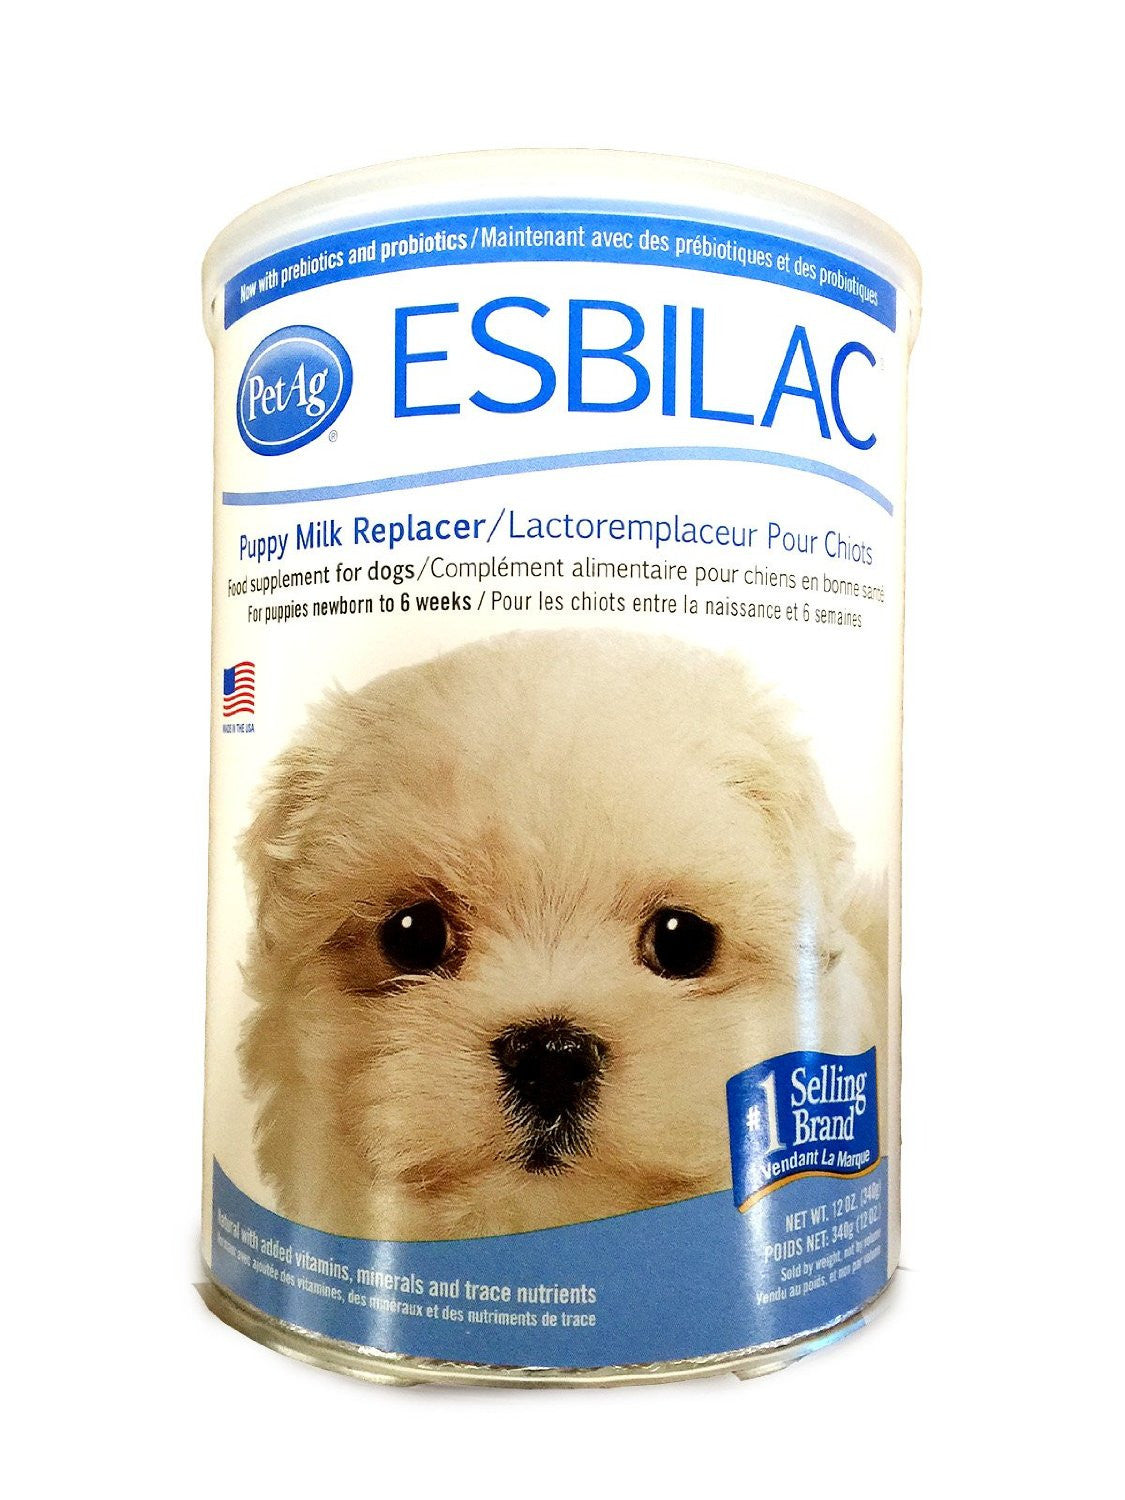 Esbilac Puppy Milk Replacer by PetAg - Squirrels and More - 4